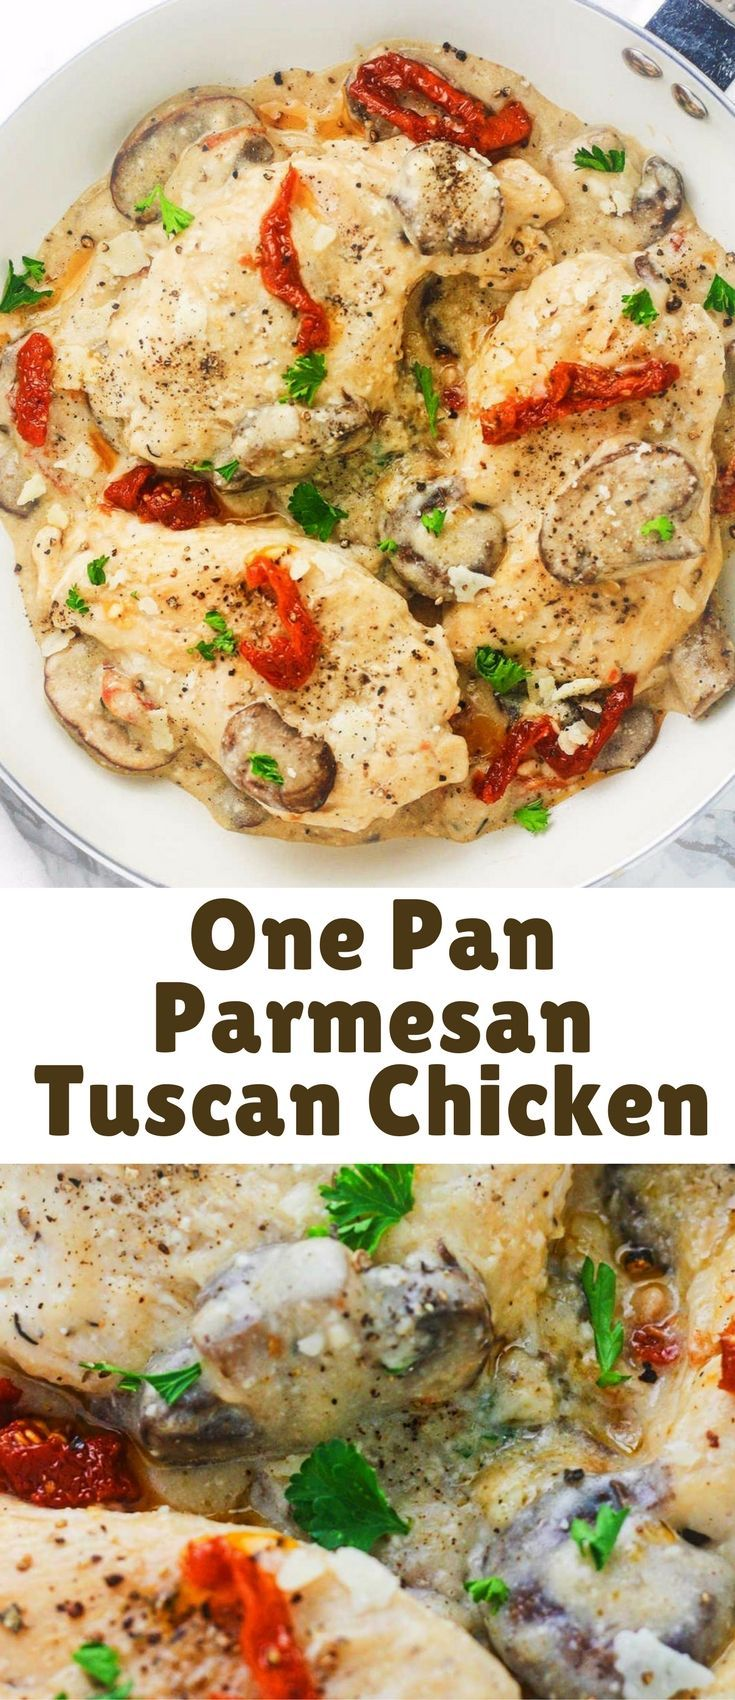 Tuscan chicken, seasoned to perfection and coated in a creamy, Greek yogurt, mushroom and Parmesan sauce.